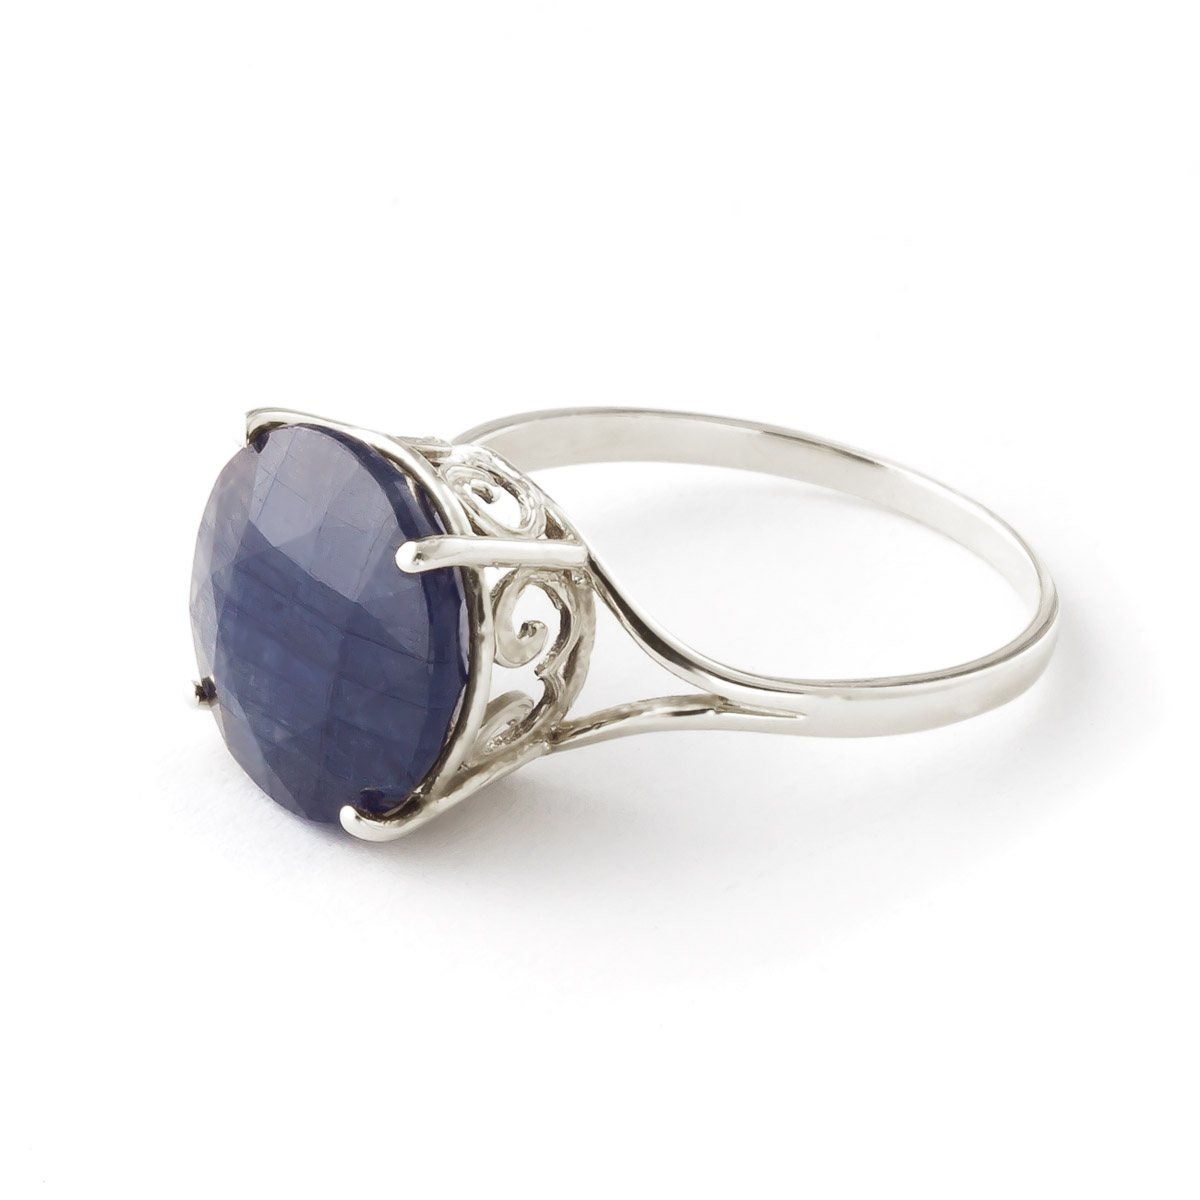 Round Cut Sapphire Ring 9.5 ct in 9ct White Gold